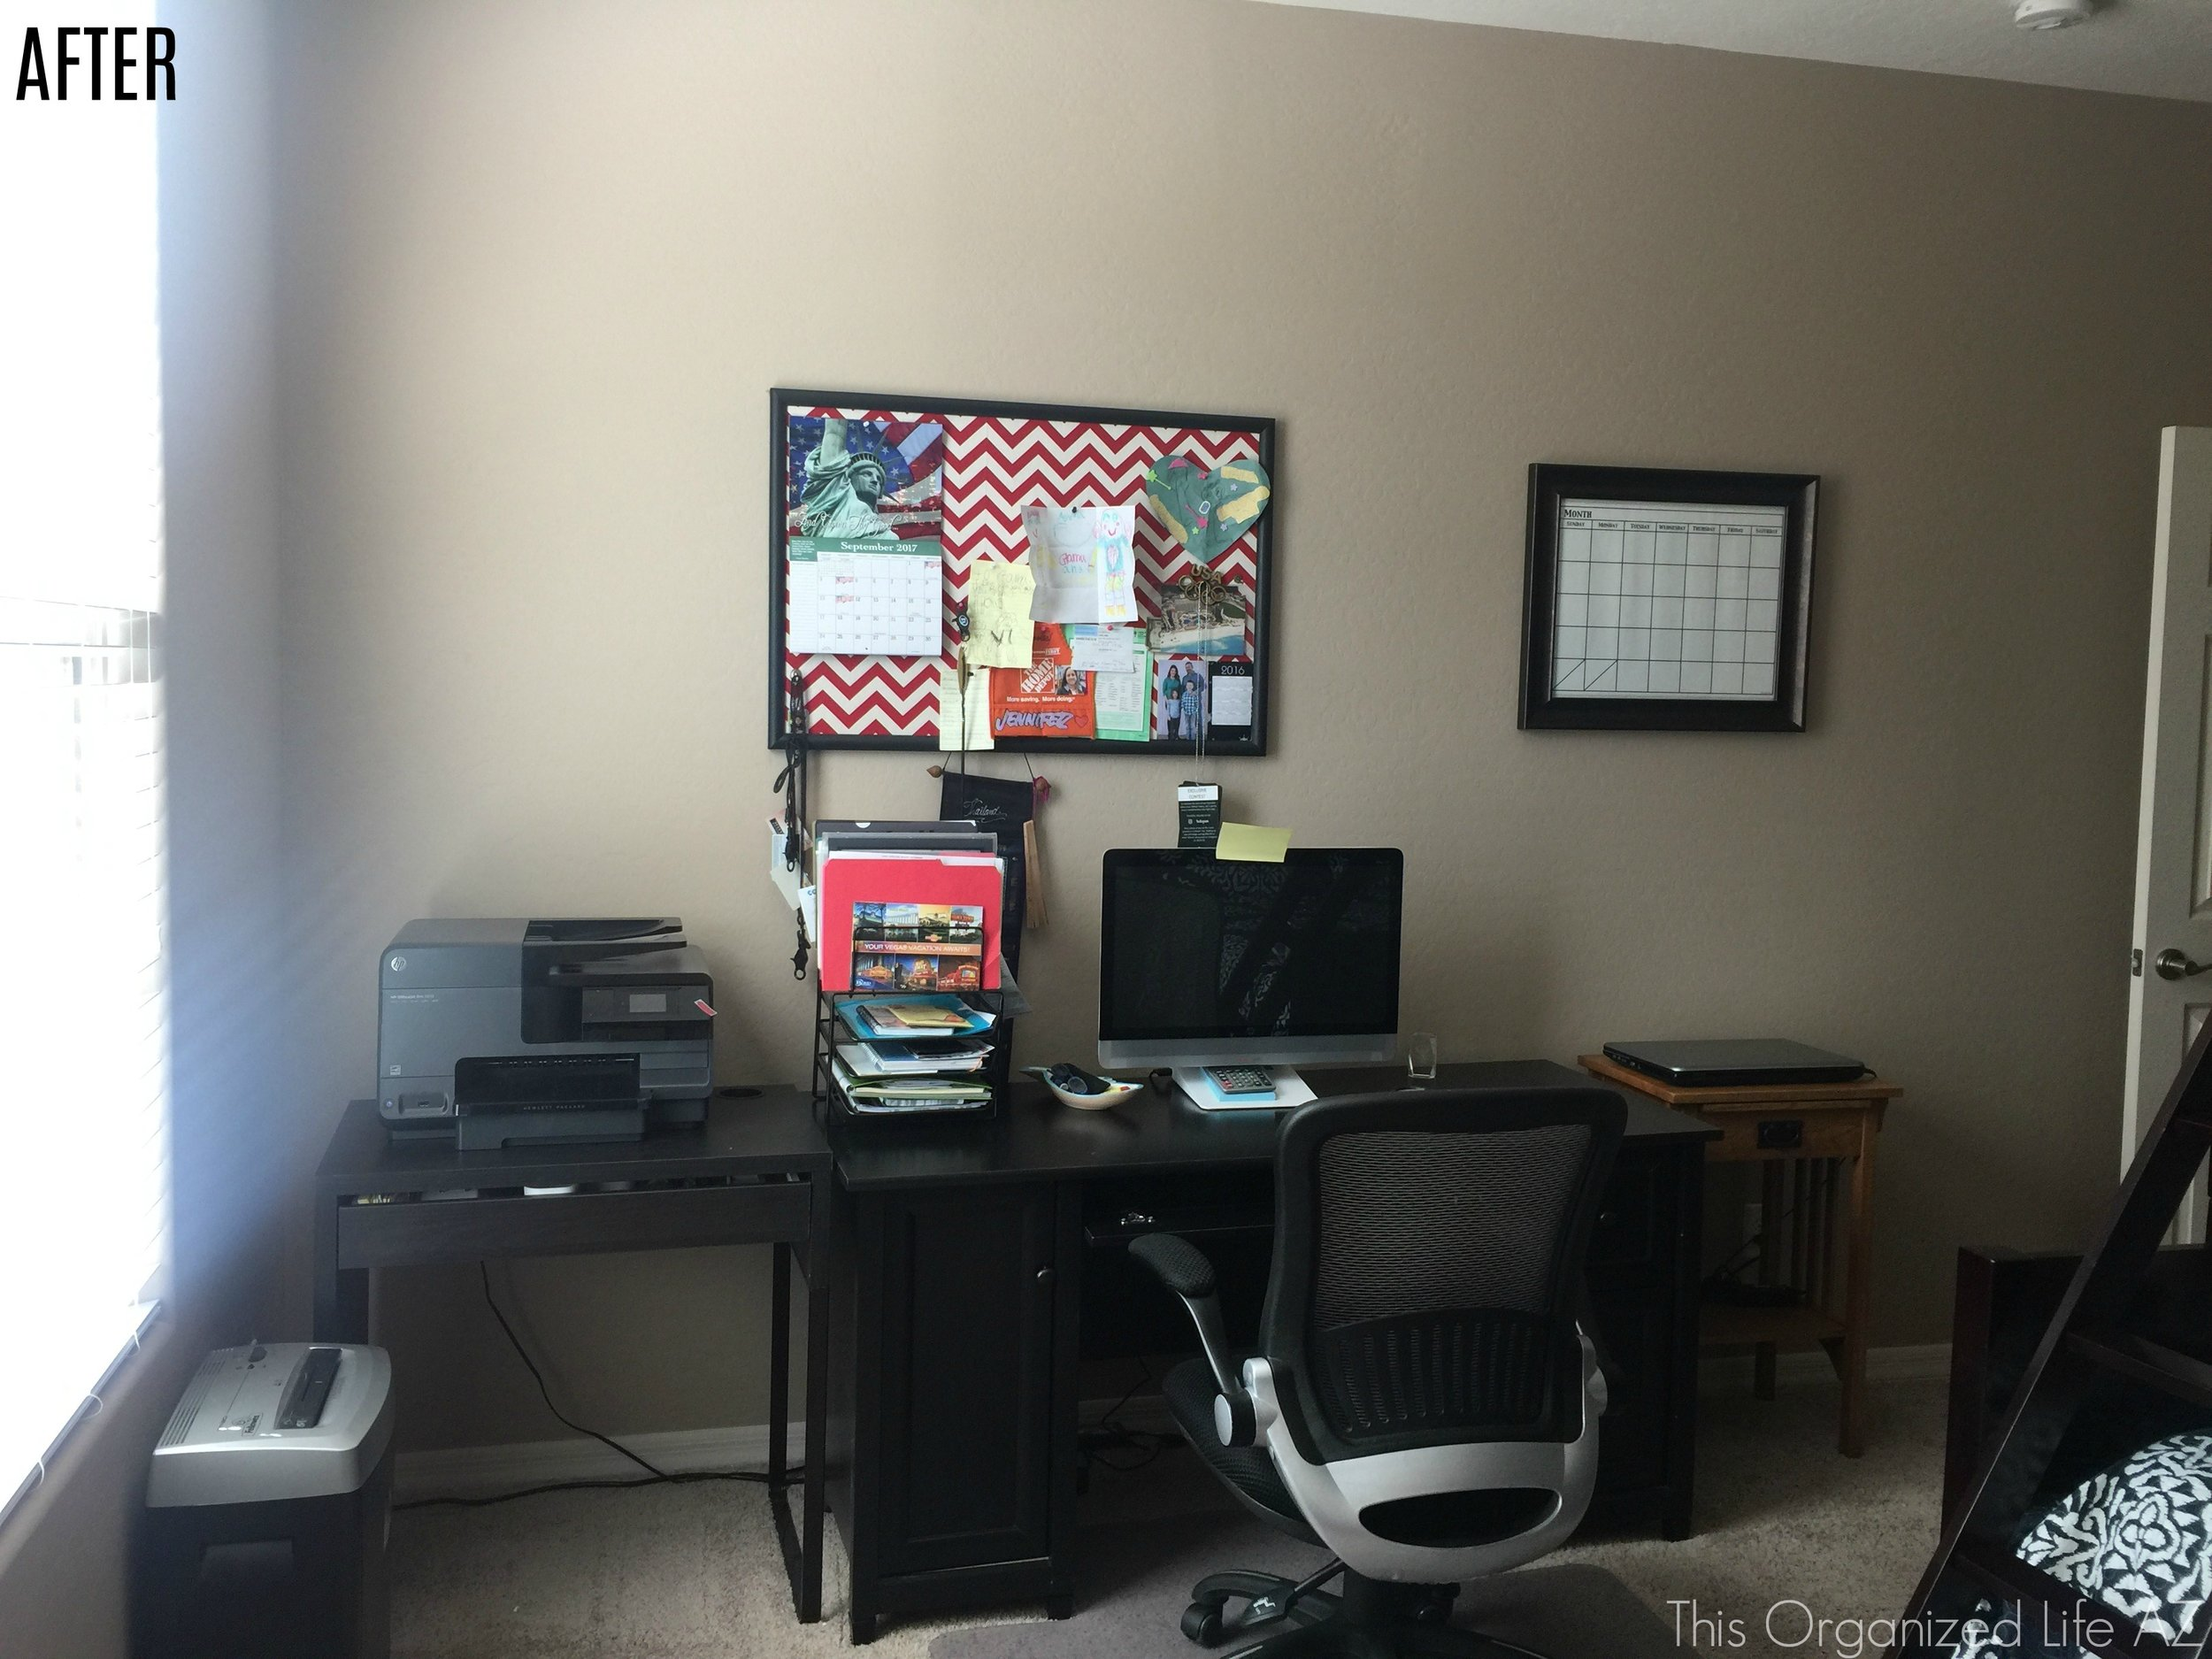 Home office organization by AZ professional organizer This Organized Life AZ